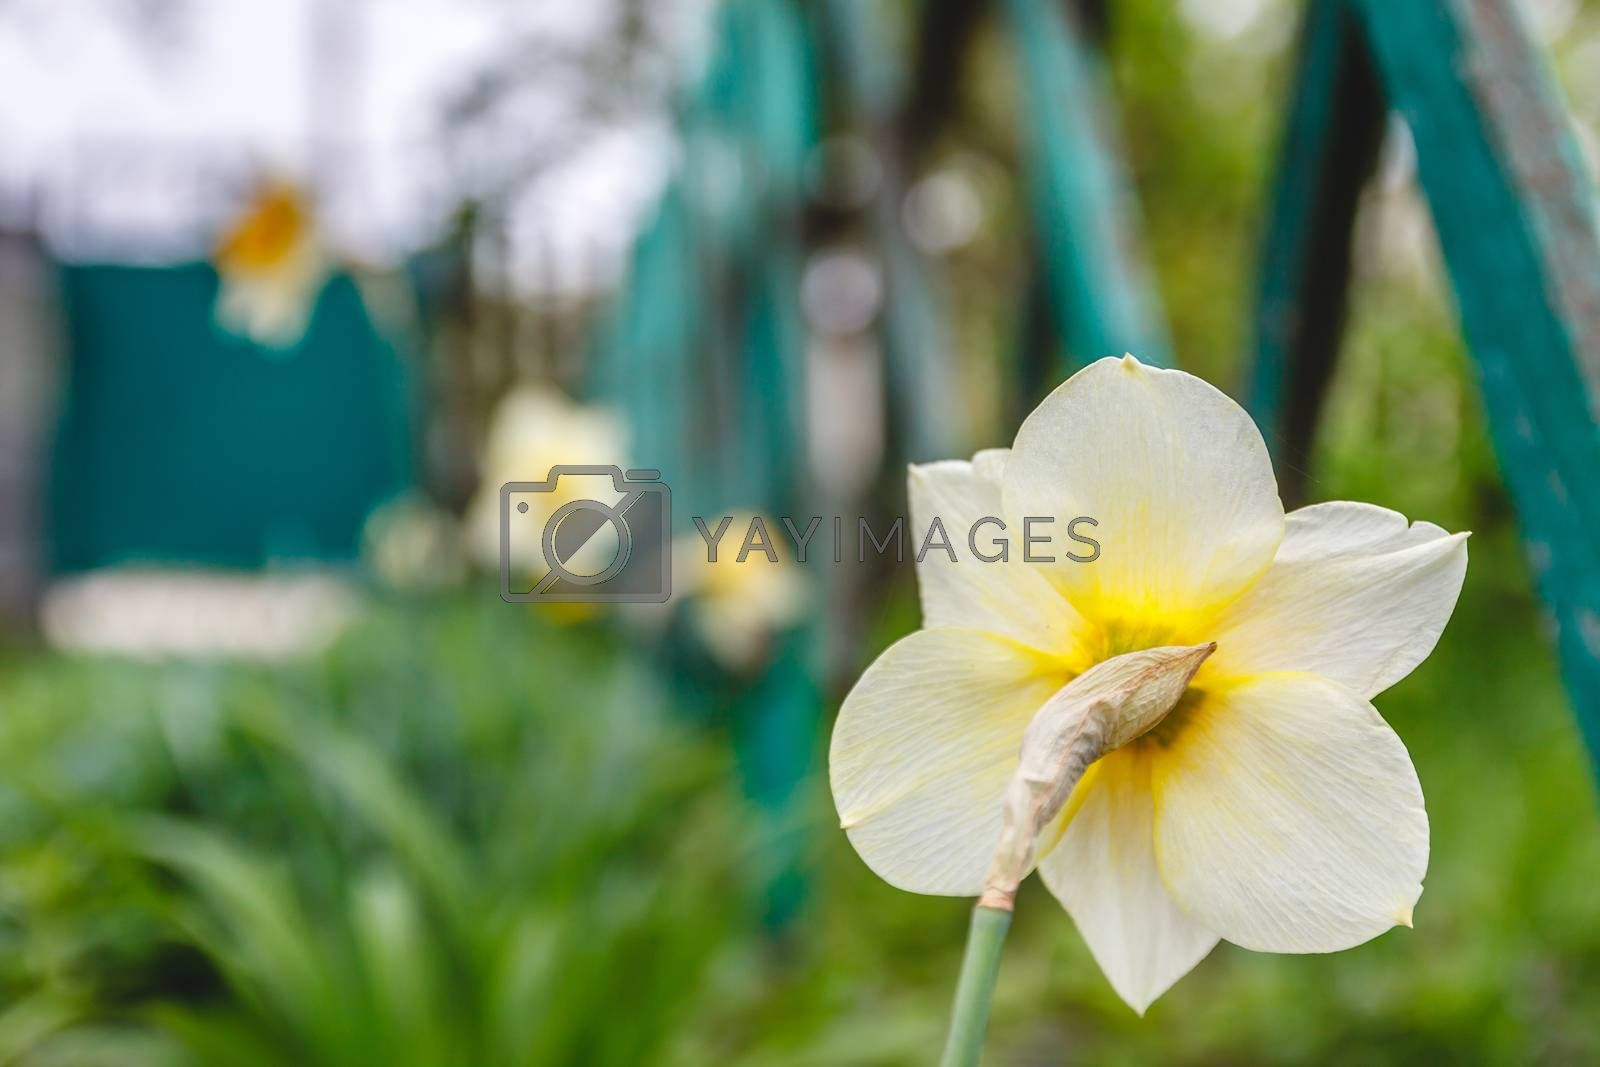 One flower of narcissus, rear view, against a green background.  by Tanacha